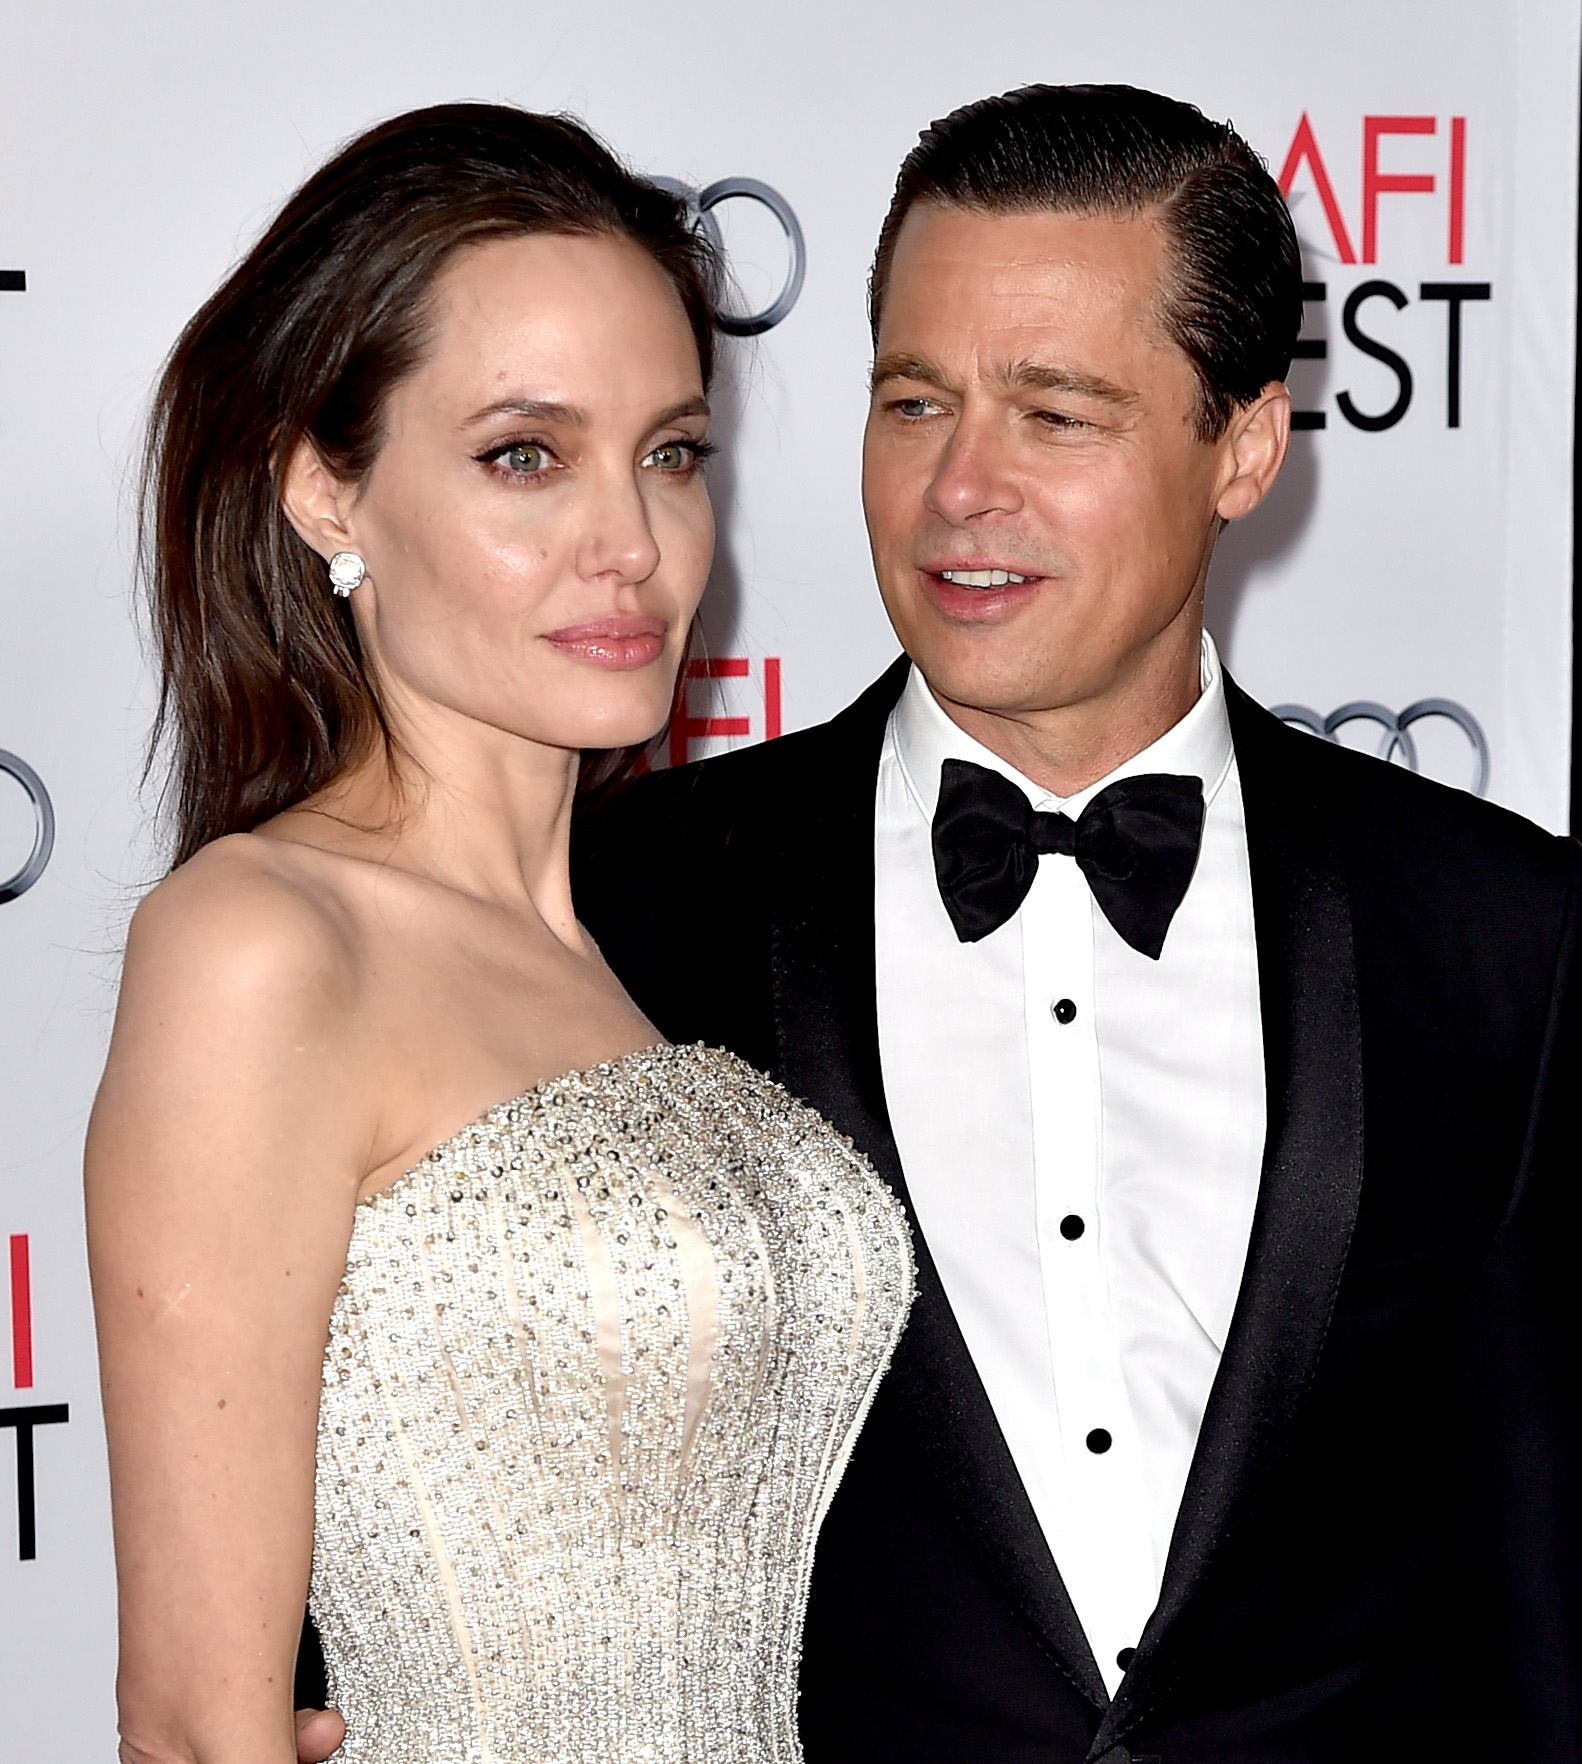 Angelina Jolie Video Hard brad pitt & angelina jolie's last interview together gives